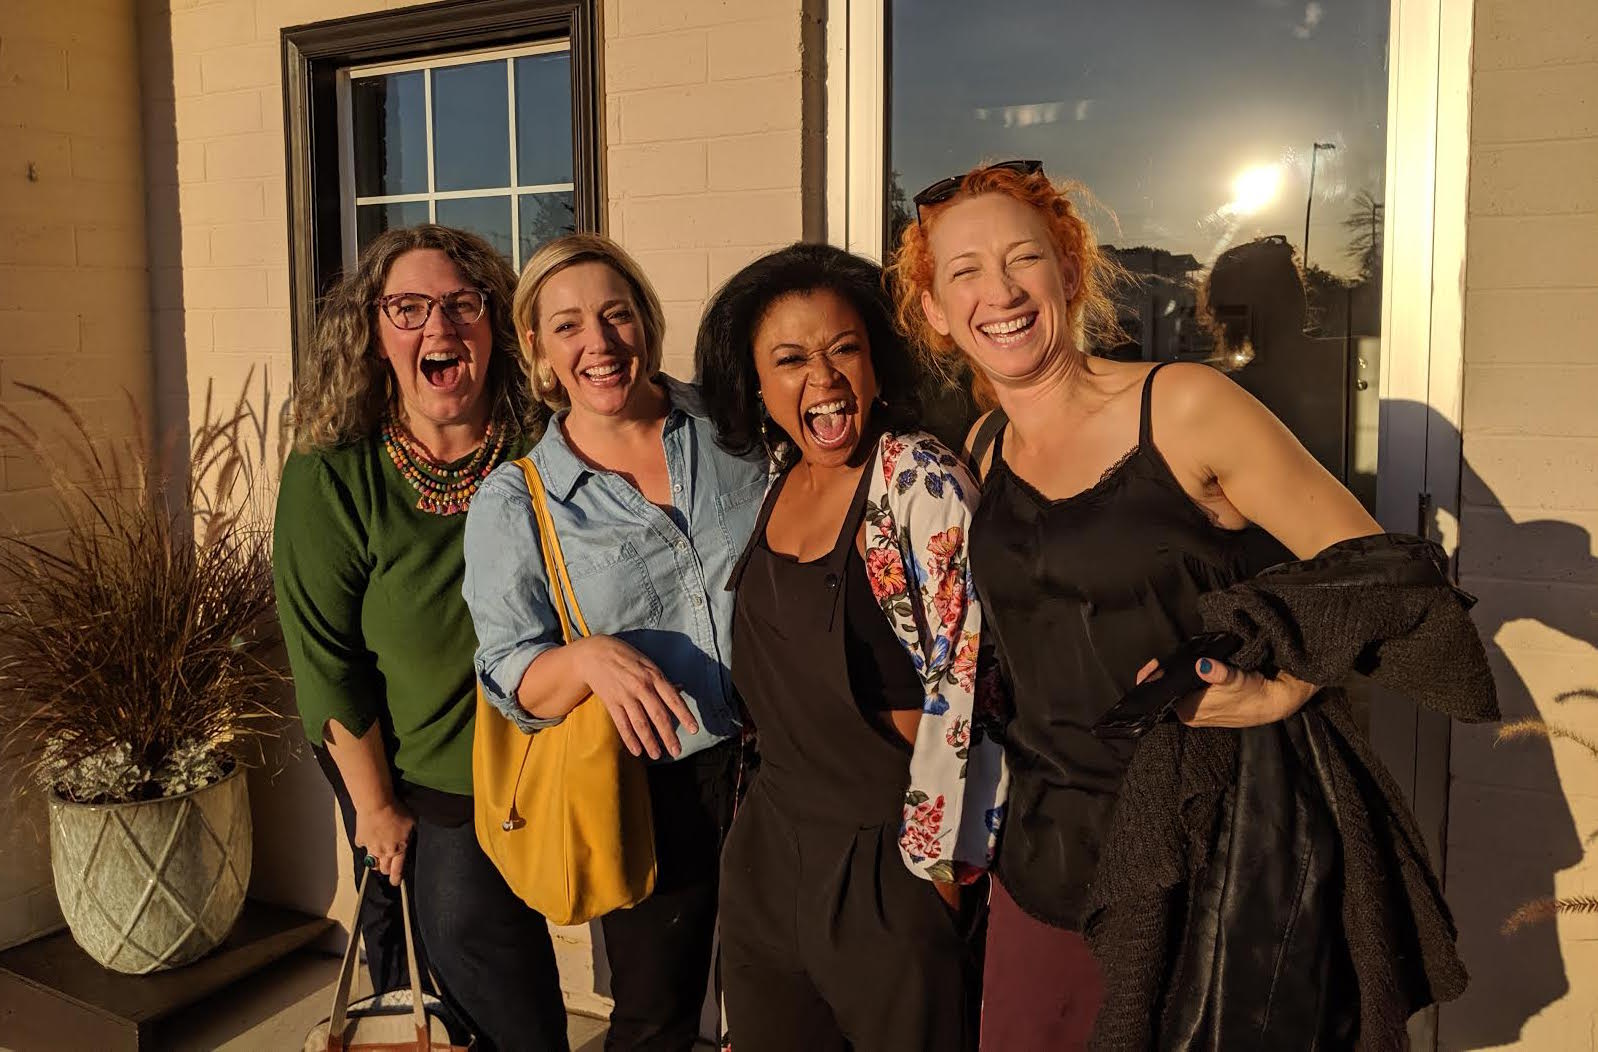 StateraArts team members in front of the new office. From left to right: Sarah Greenman, Melinda Pfundstein, Sabrina Cofield, and Kate St. Pierre.